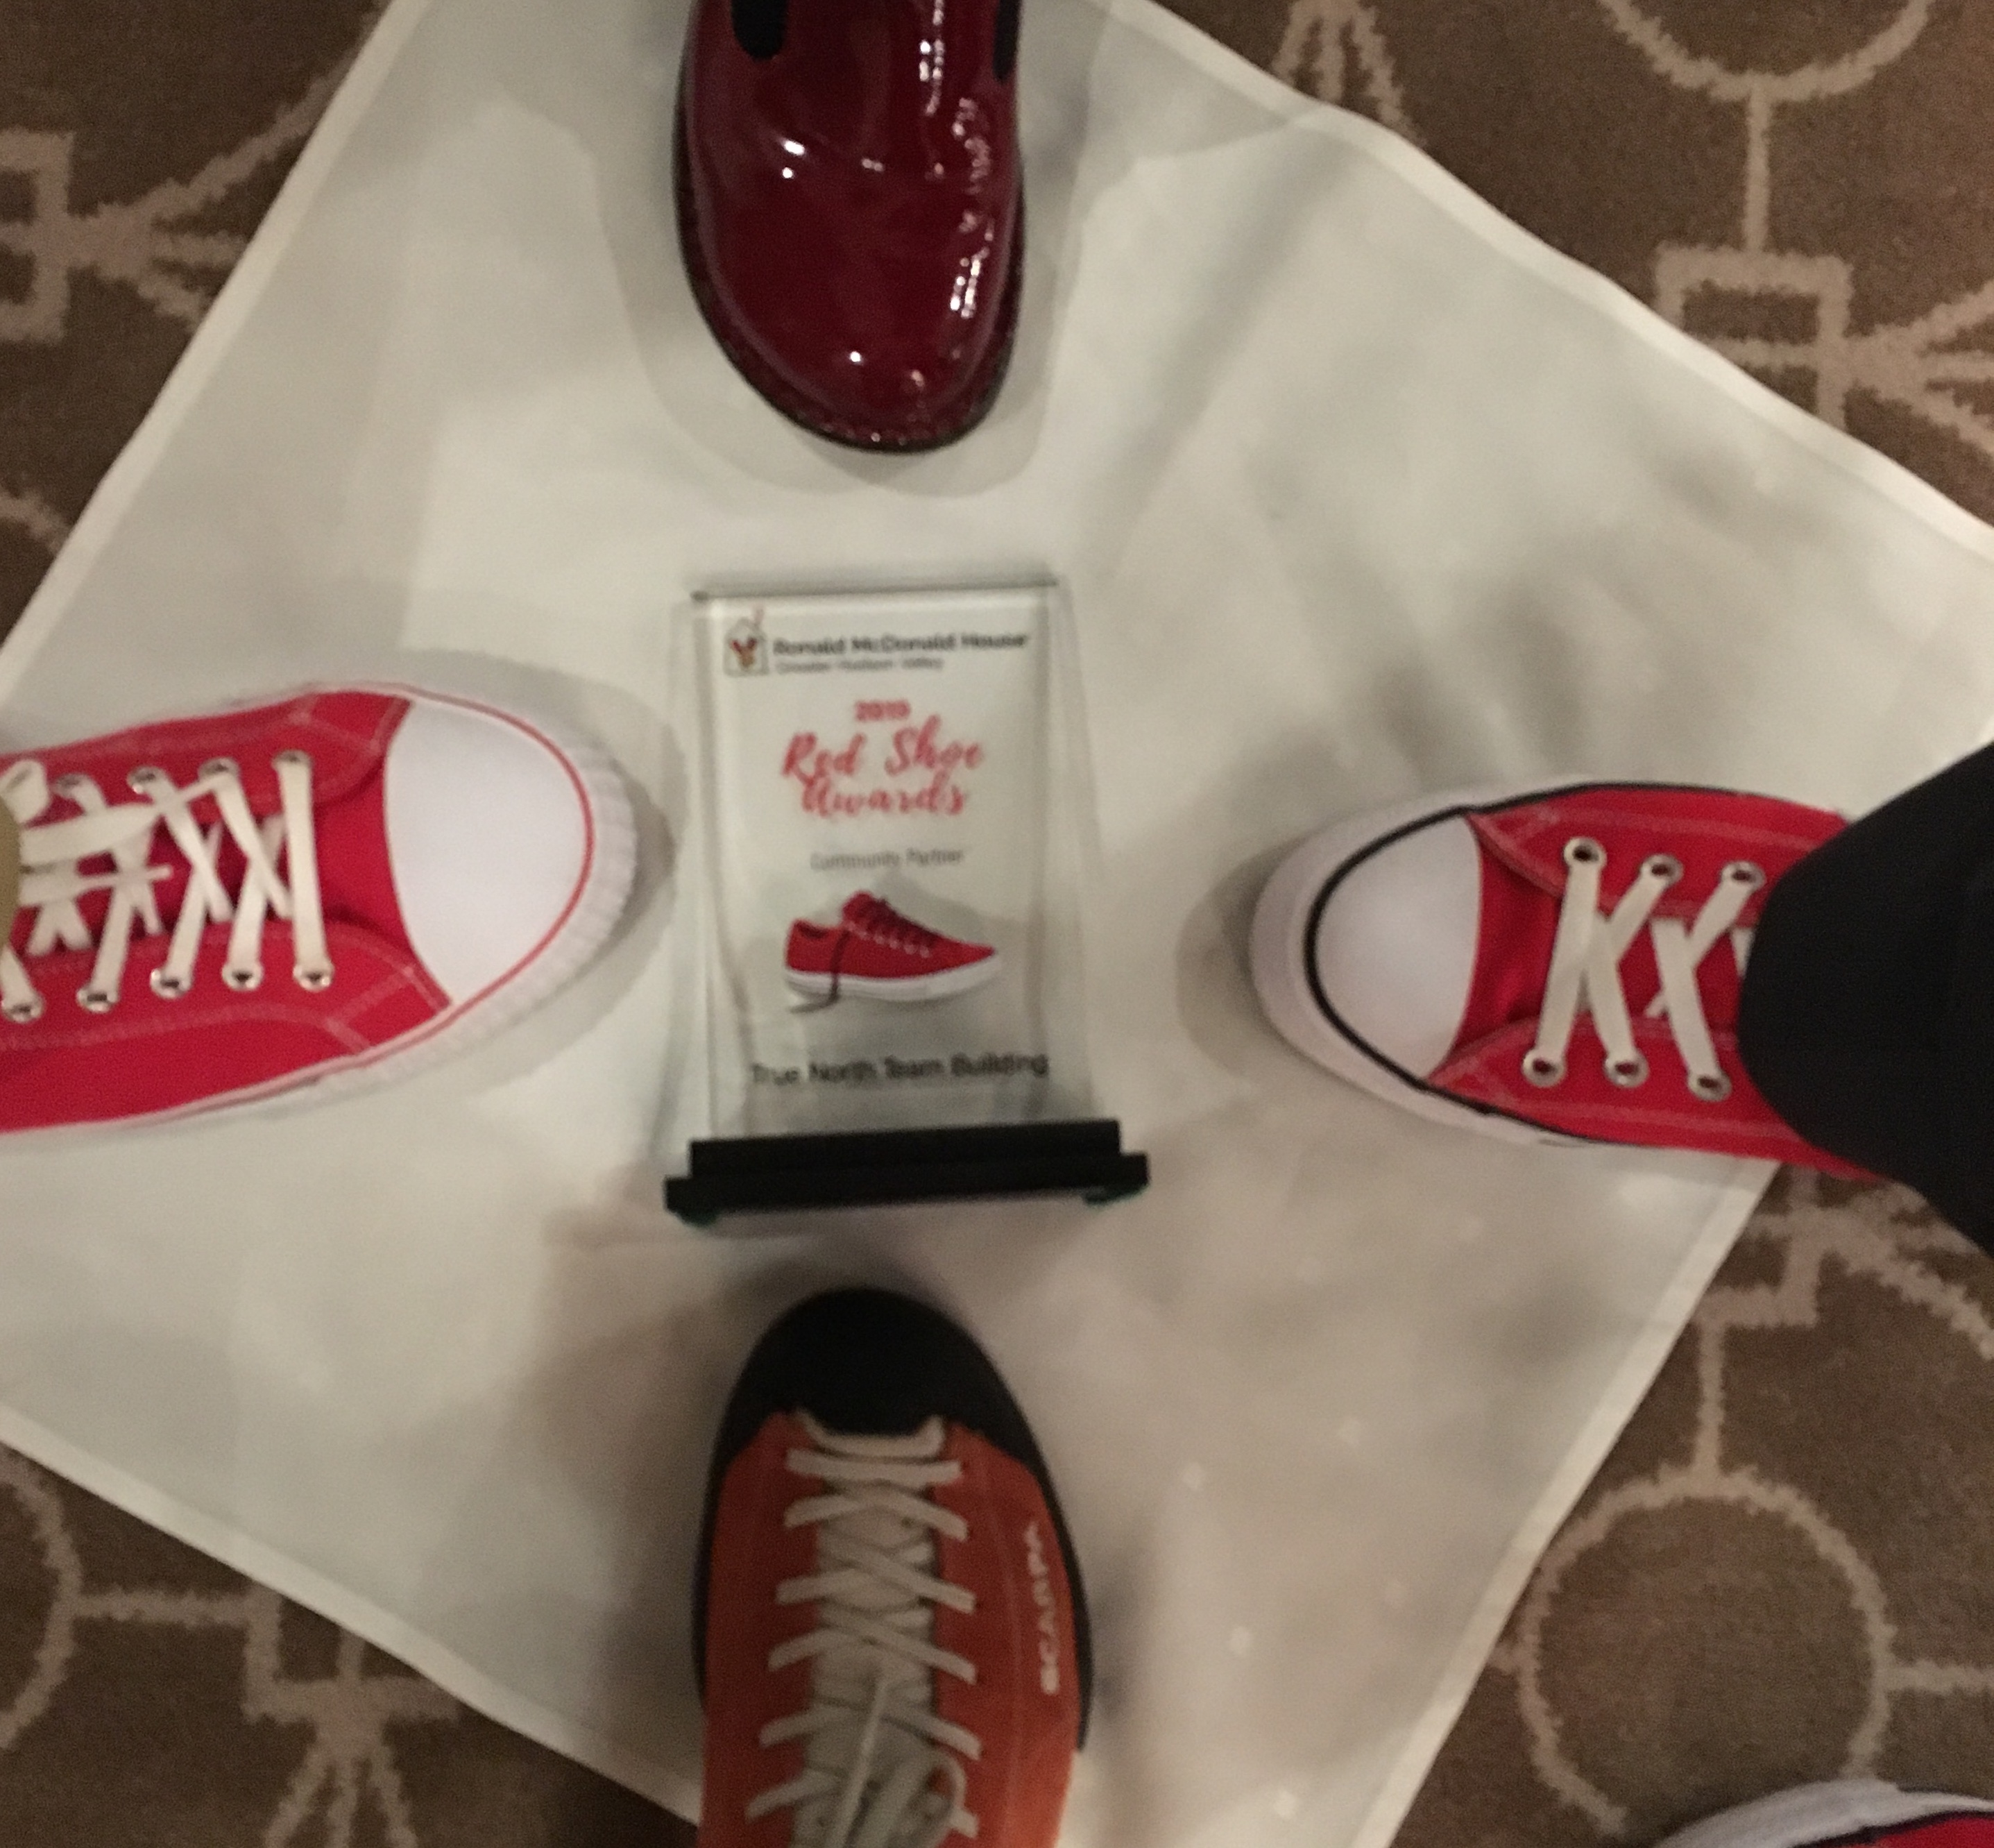 Red shoes and award